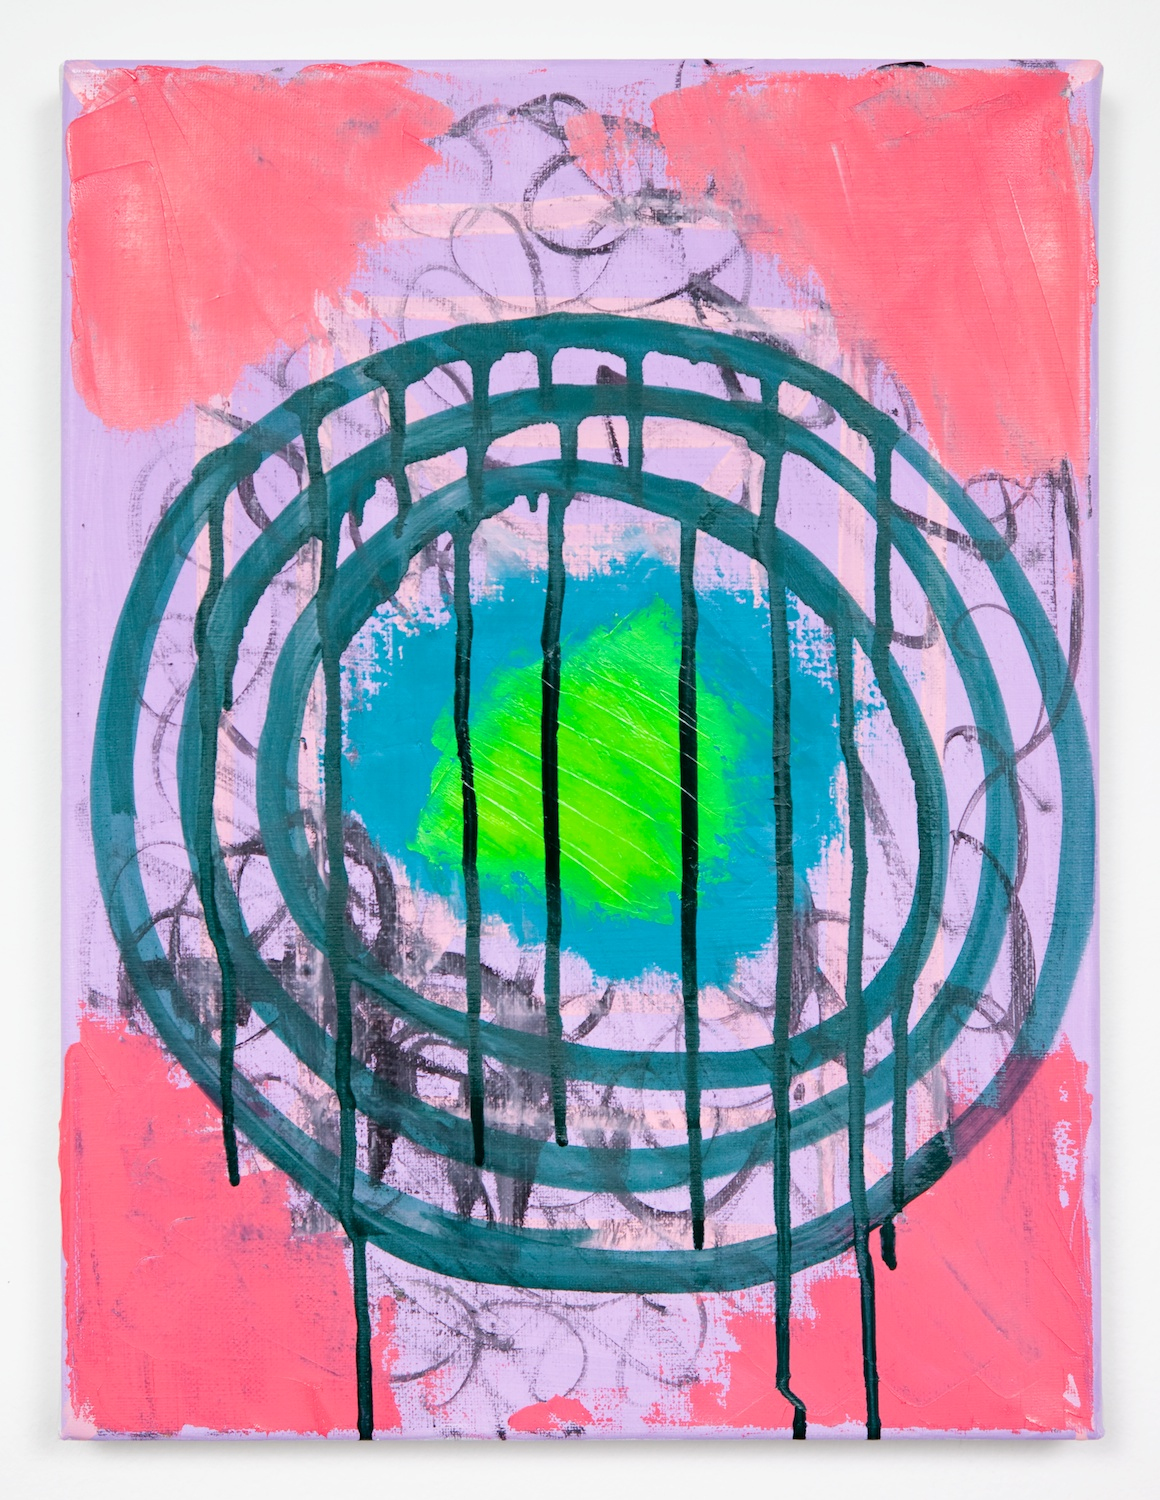 Joanne Greenbaum  Untitled  2011 Oil, acrylic and mixed media on linen 16h x 12w in JG023